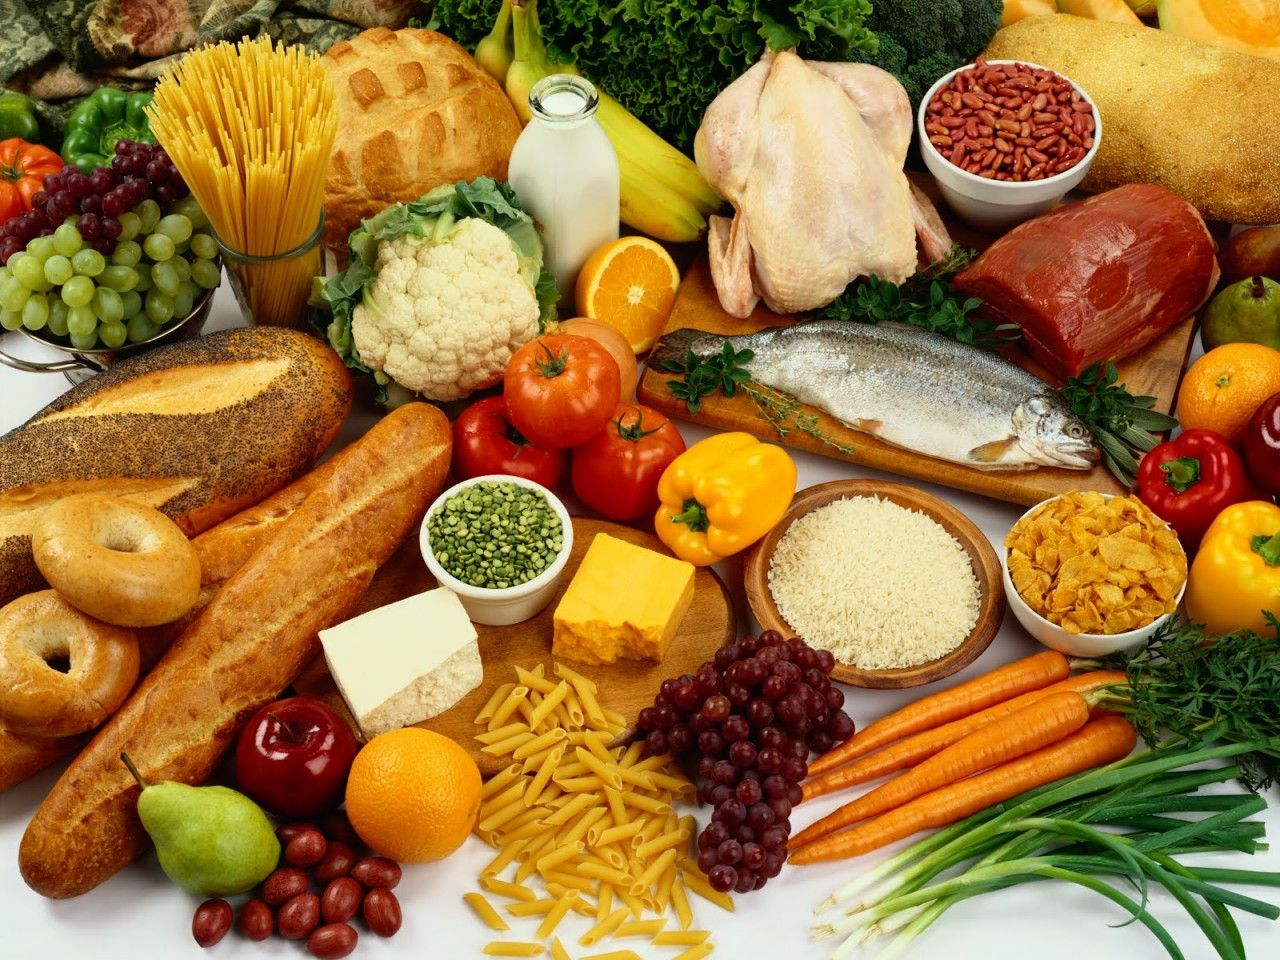 Good Wallpaper High Resolution Food - 5d398f7363bde099c49621ca94a43aad  Perfect Image Reference_628354.jpg